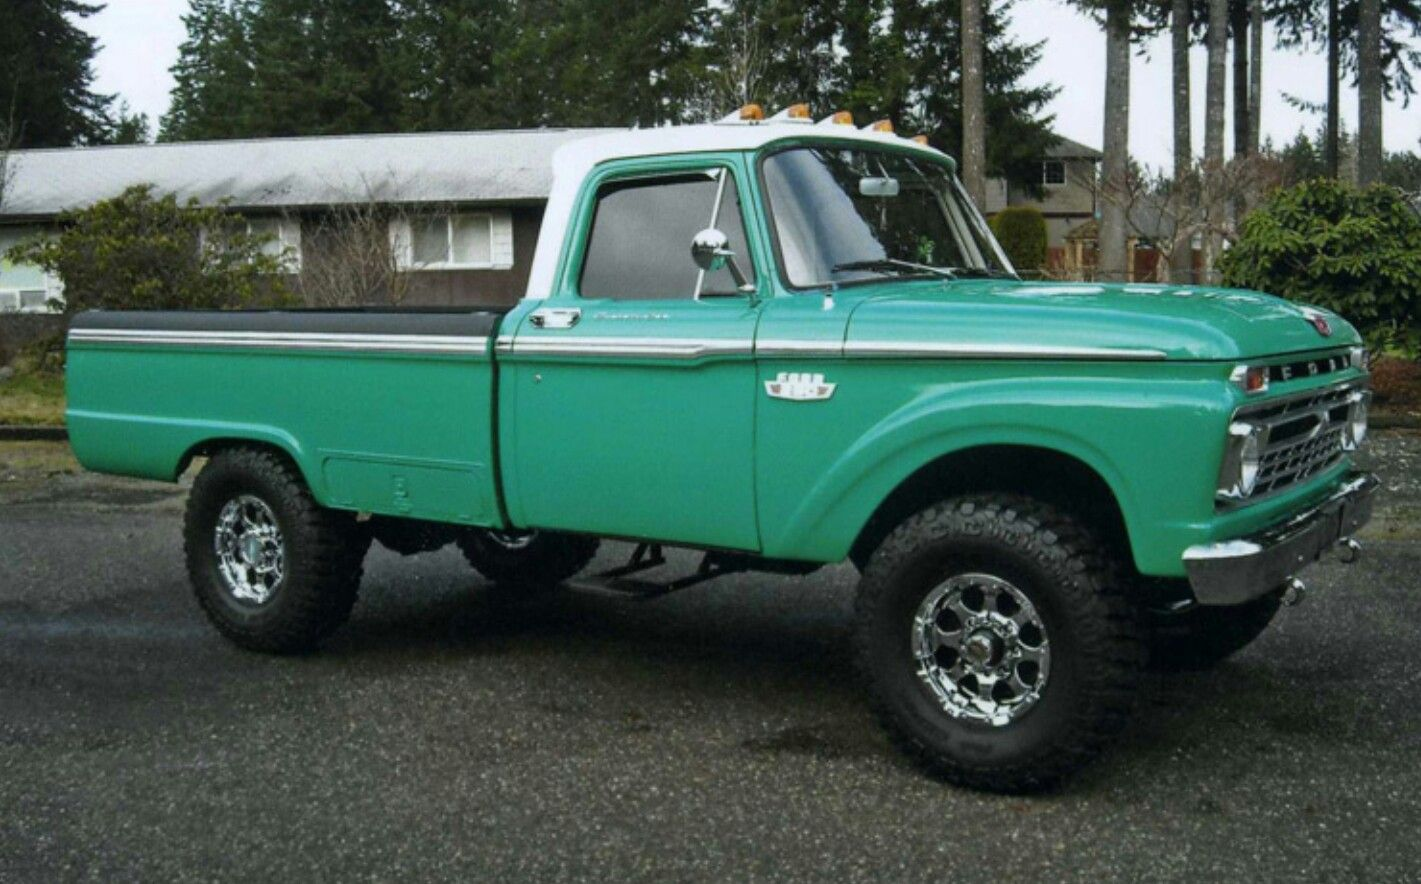 66 Ford F 250 4x4 With Images Ford Trucks Classic Ford Trucks